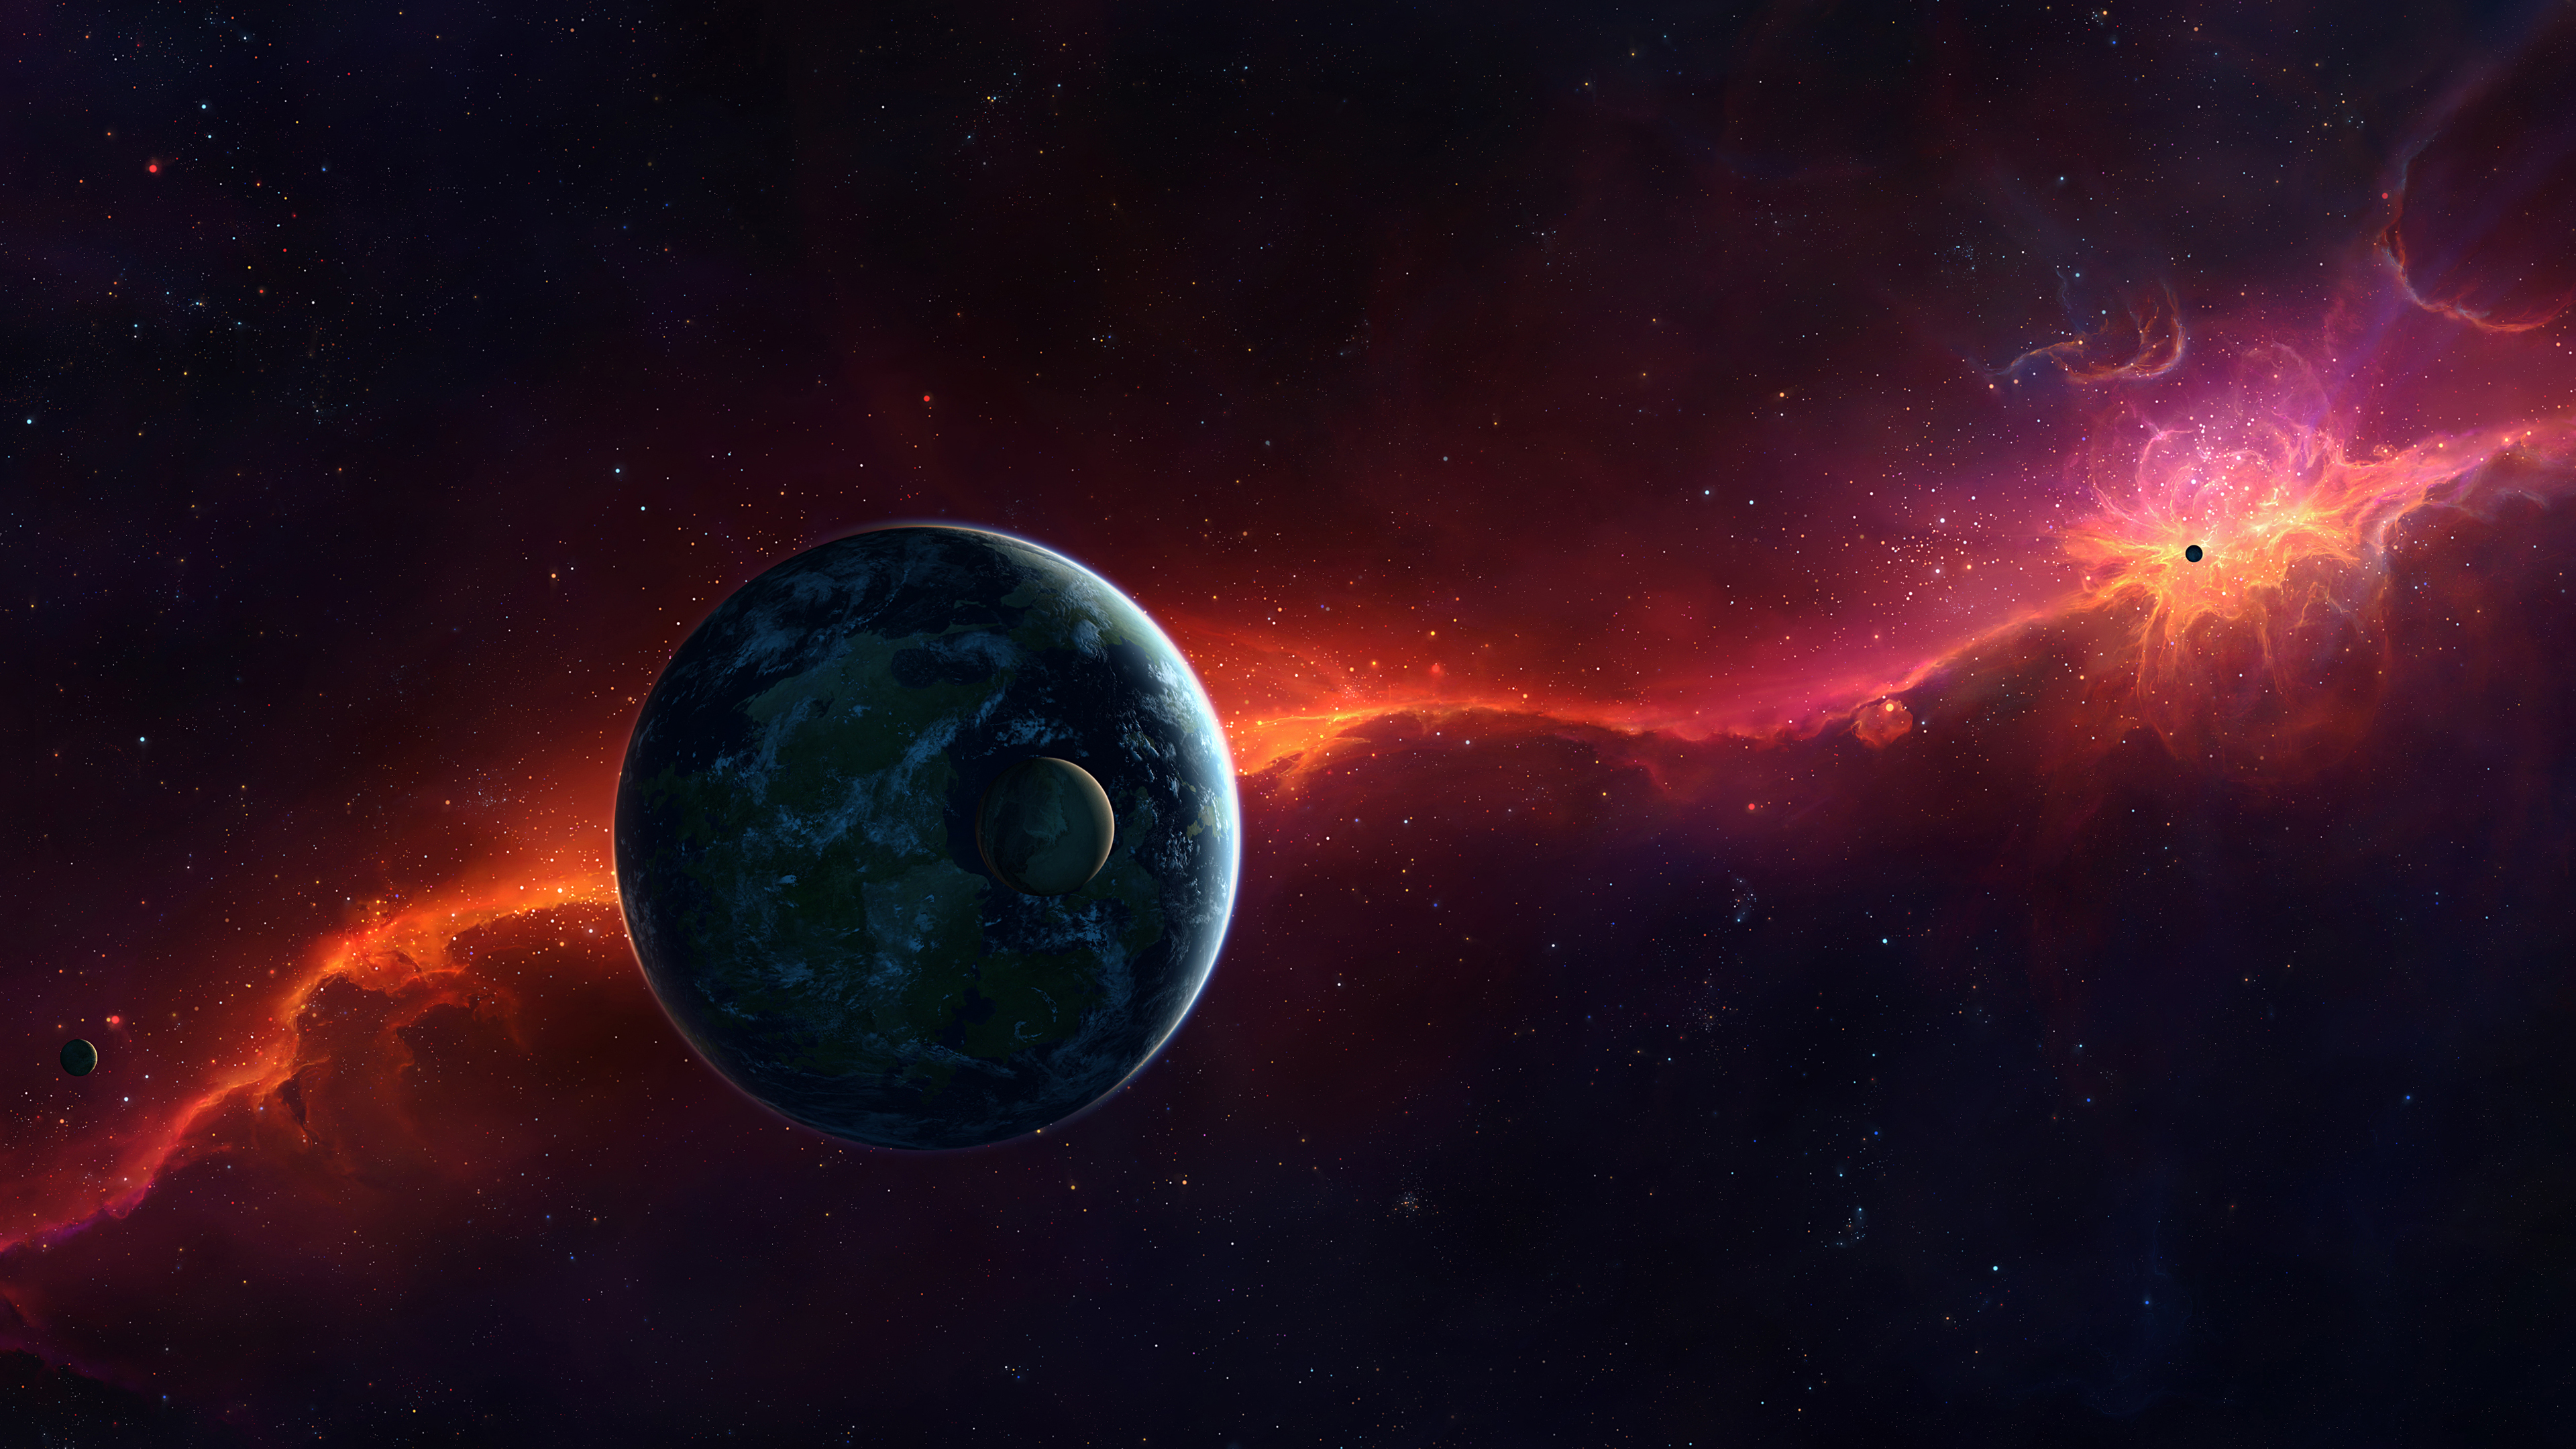 Full HD Wallpapers Space Earth Nebulae Planets Stars 4K Ultra 3840x2160